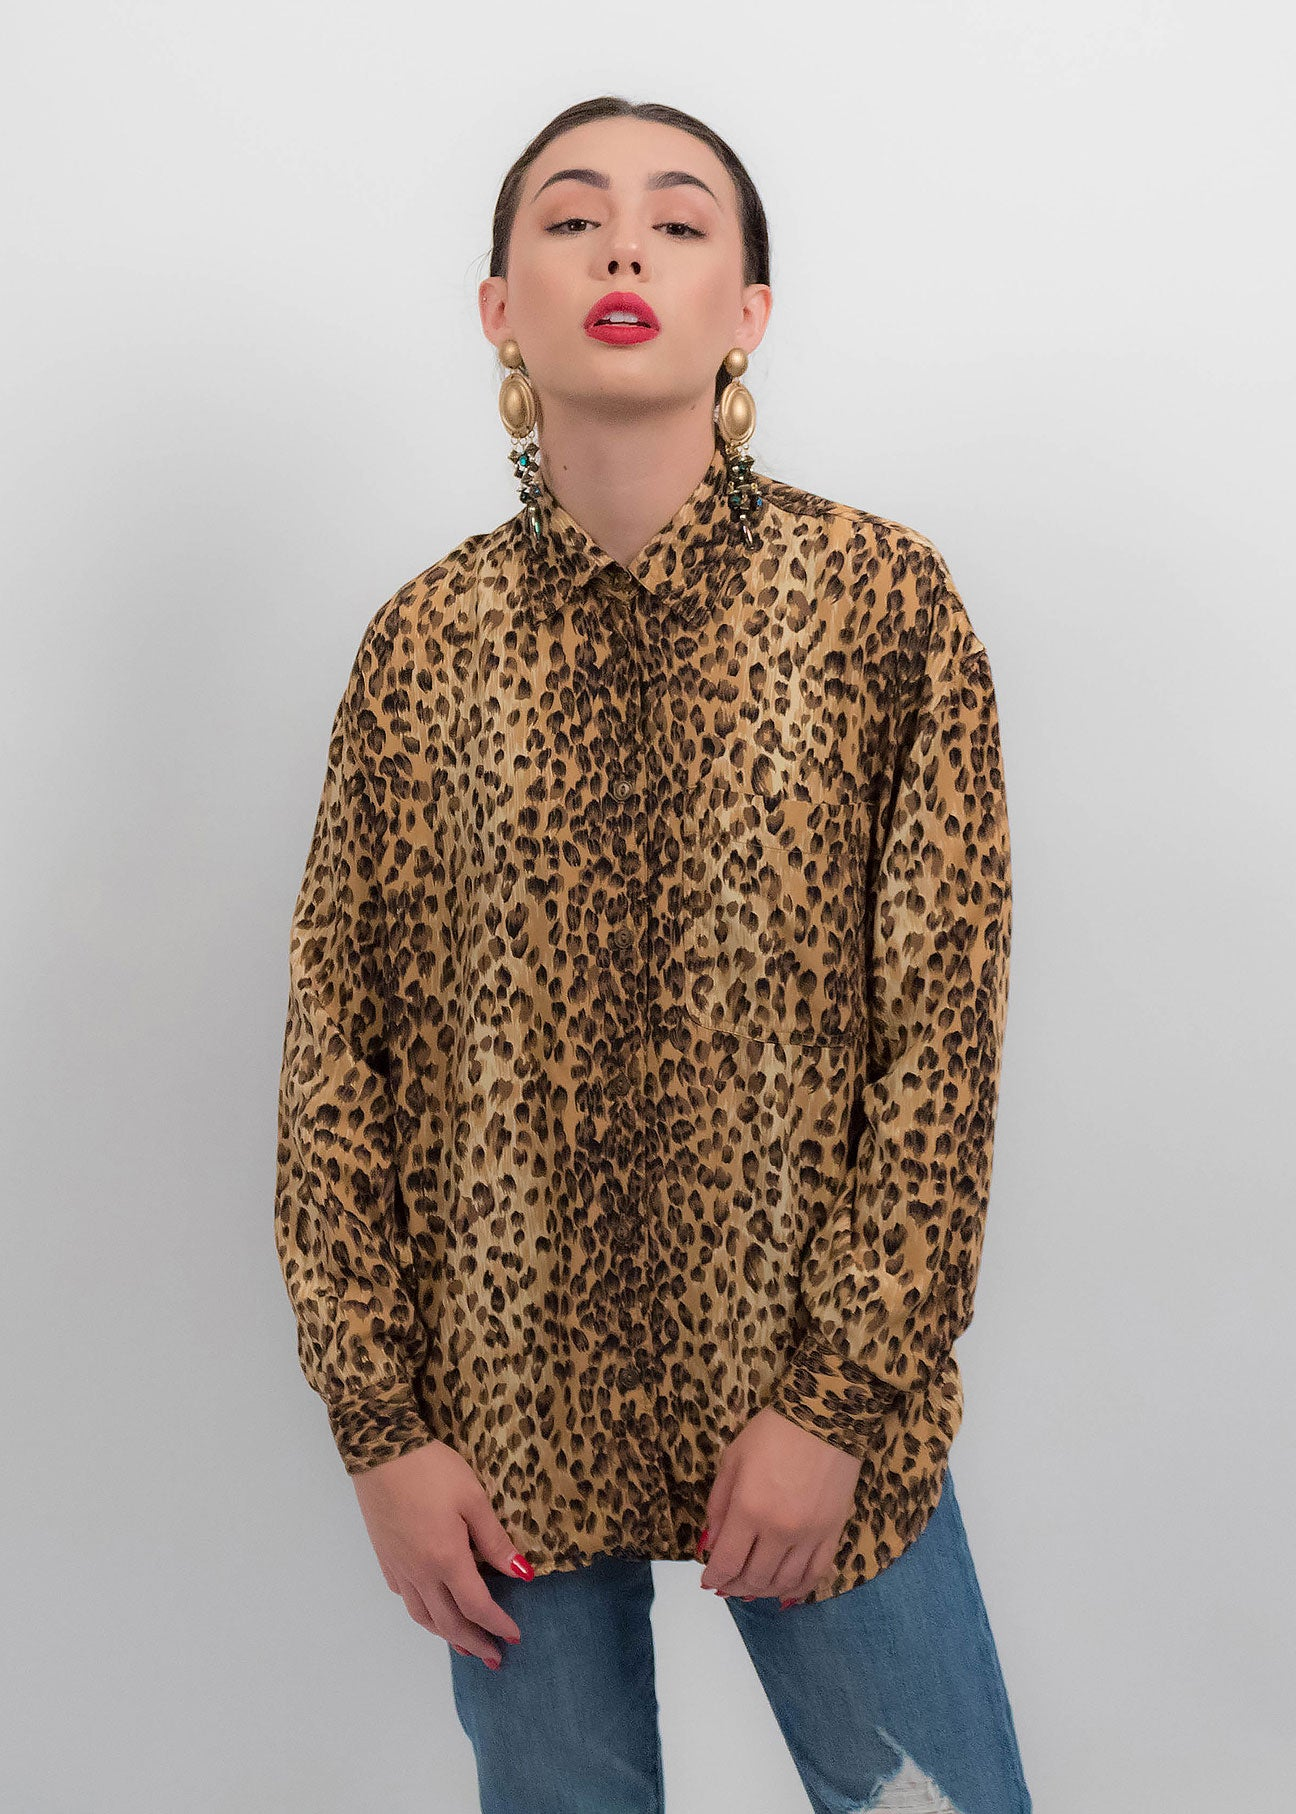 80s Oversized Cheetah Blouse